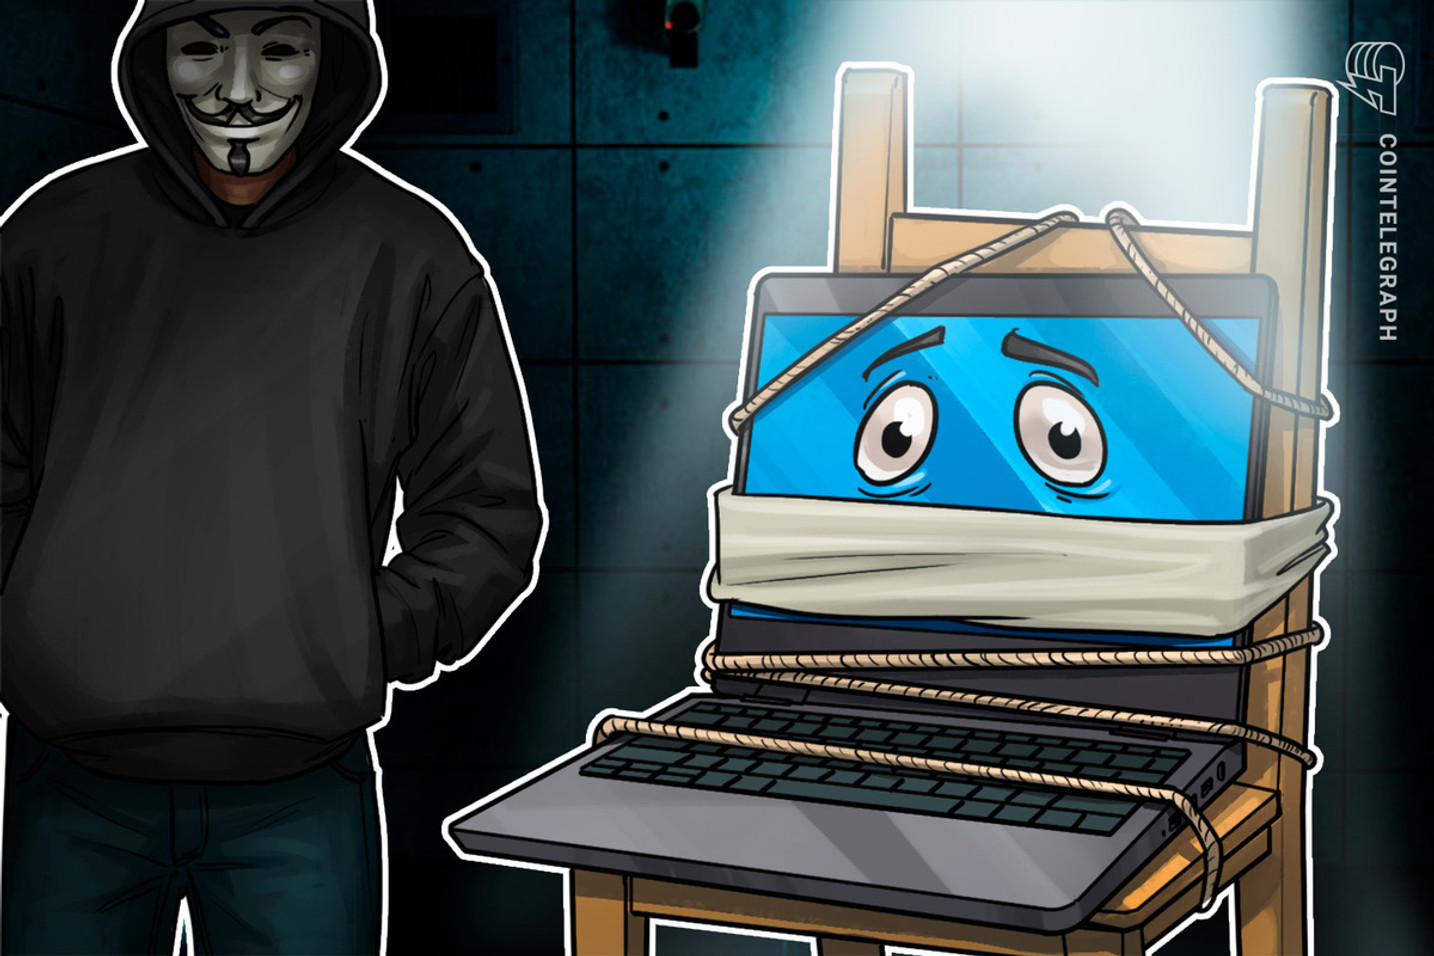 Ransomware Hacks Cost Victims $144M in BTC Over Last 6 Years, FBI Says